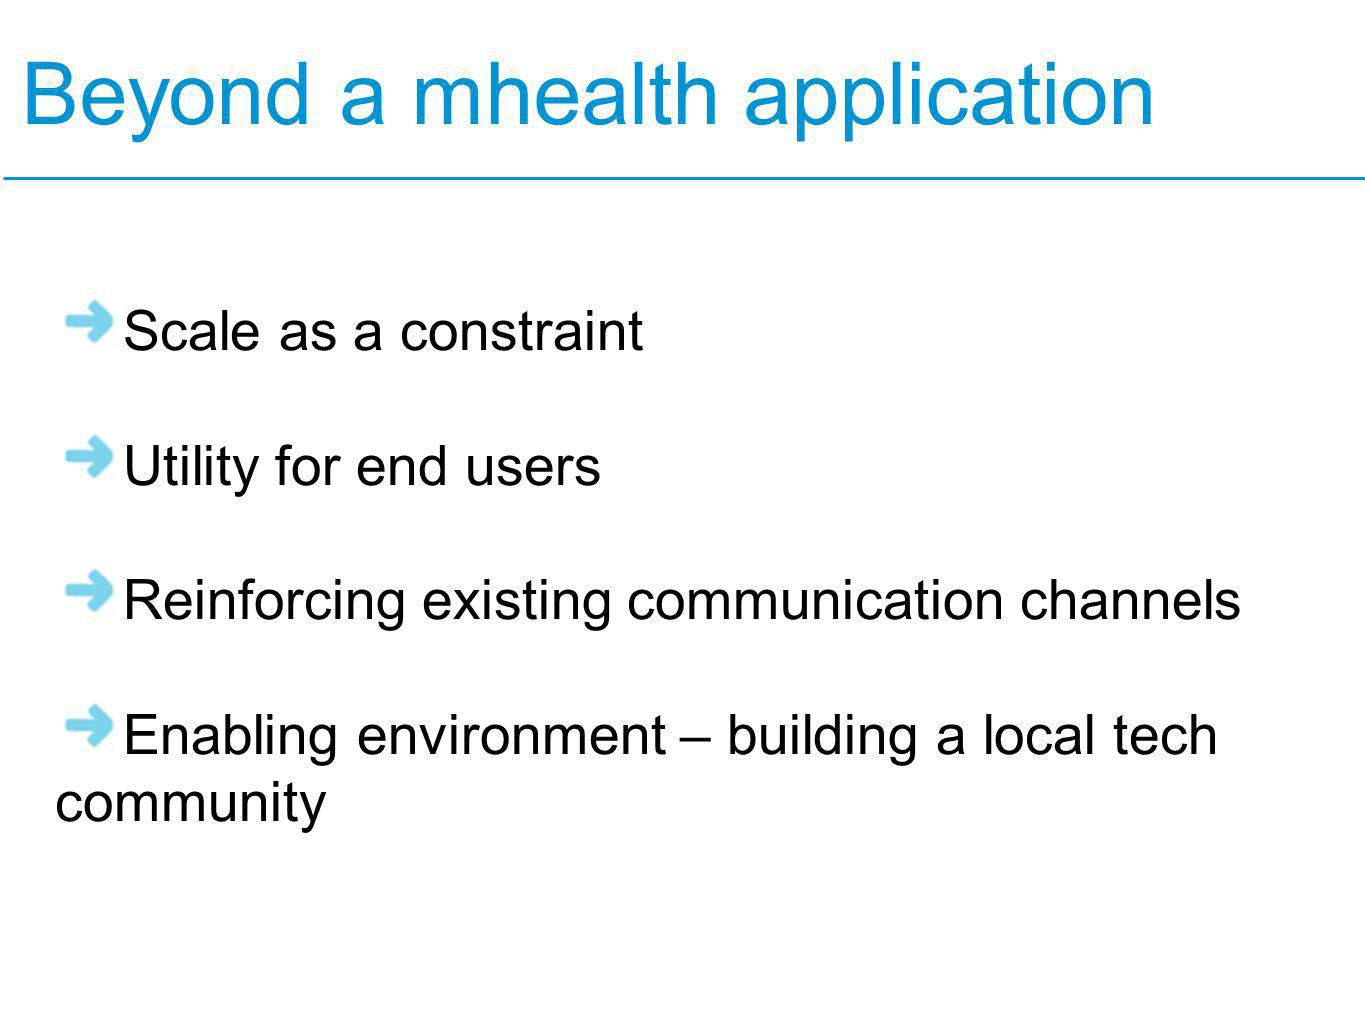 Beyond a mhealth application Scale as a constraint Utility for end users Reinforcing existing communication channels Enabling environment – building a local tech community